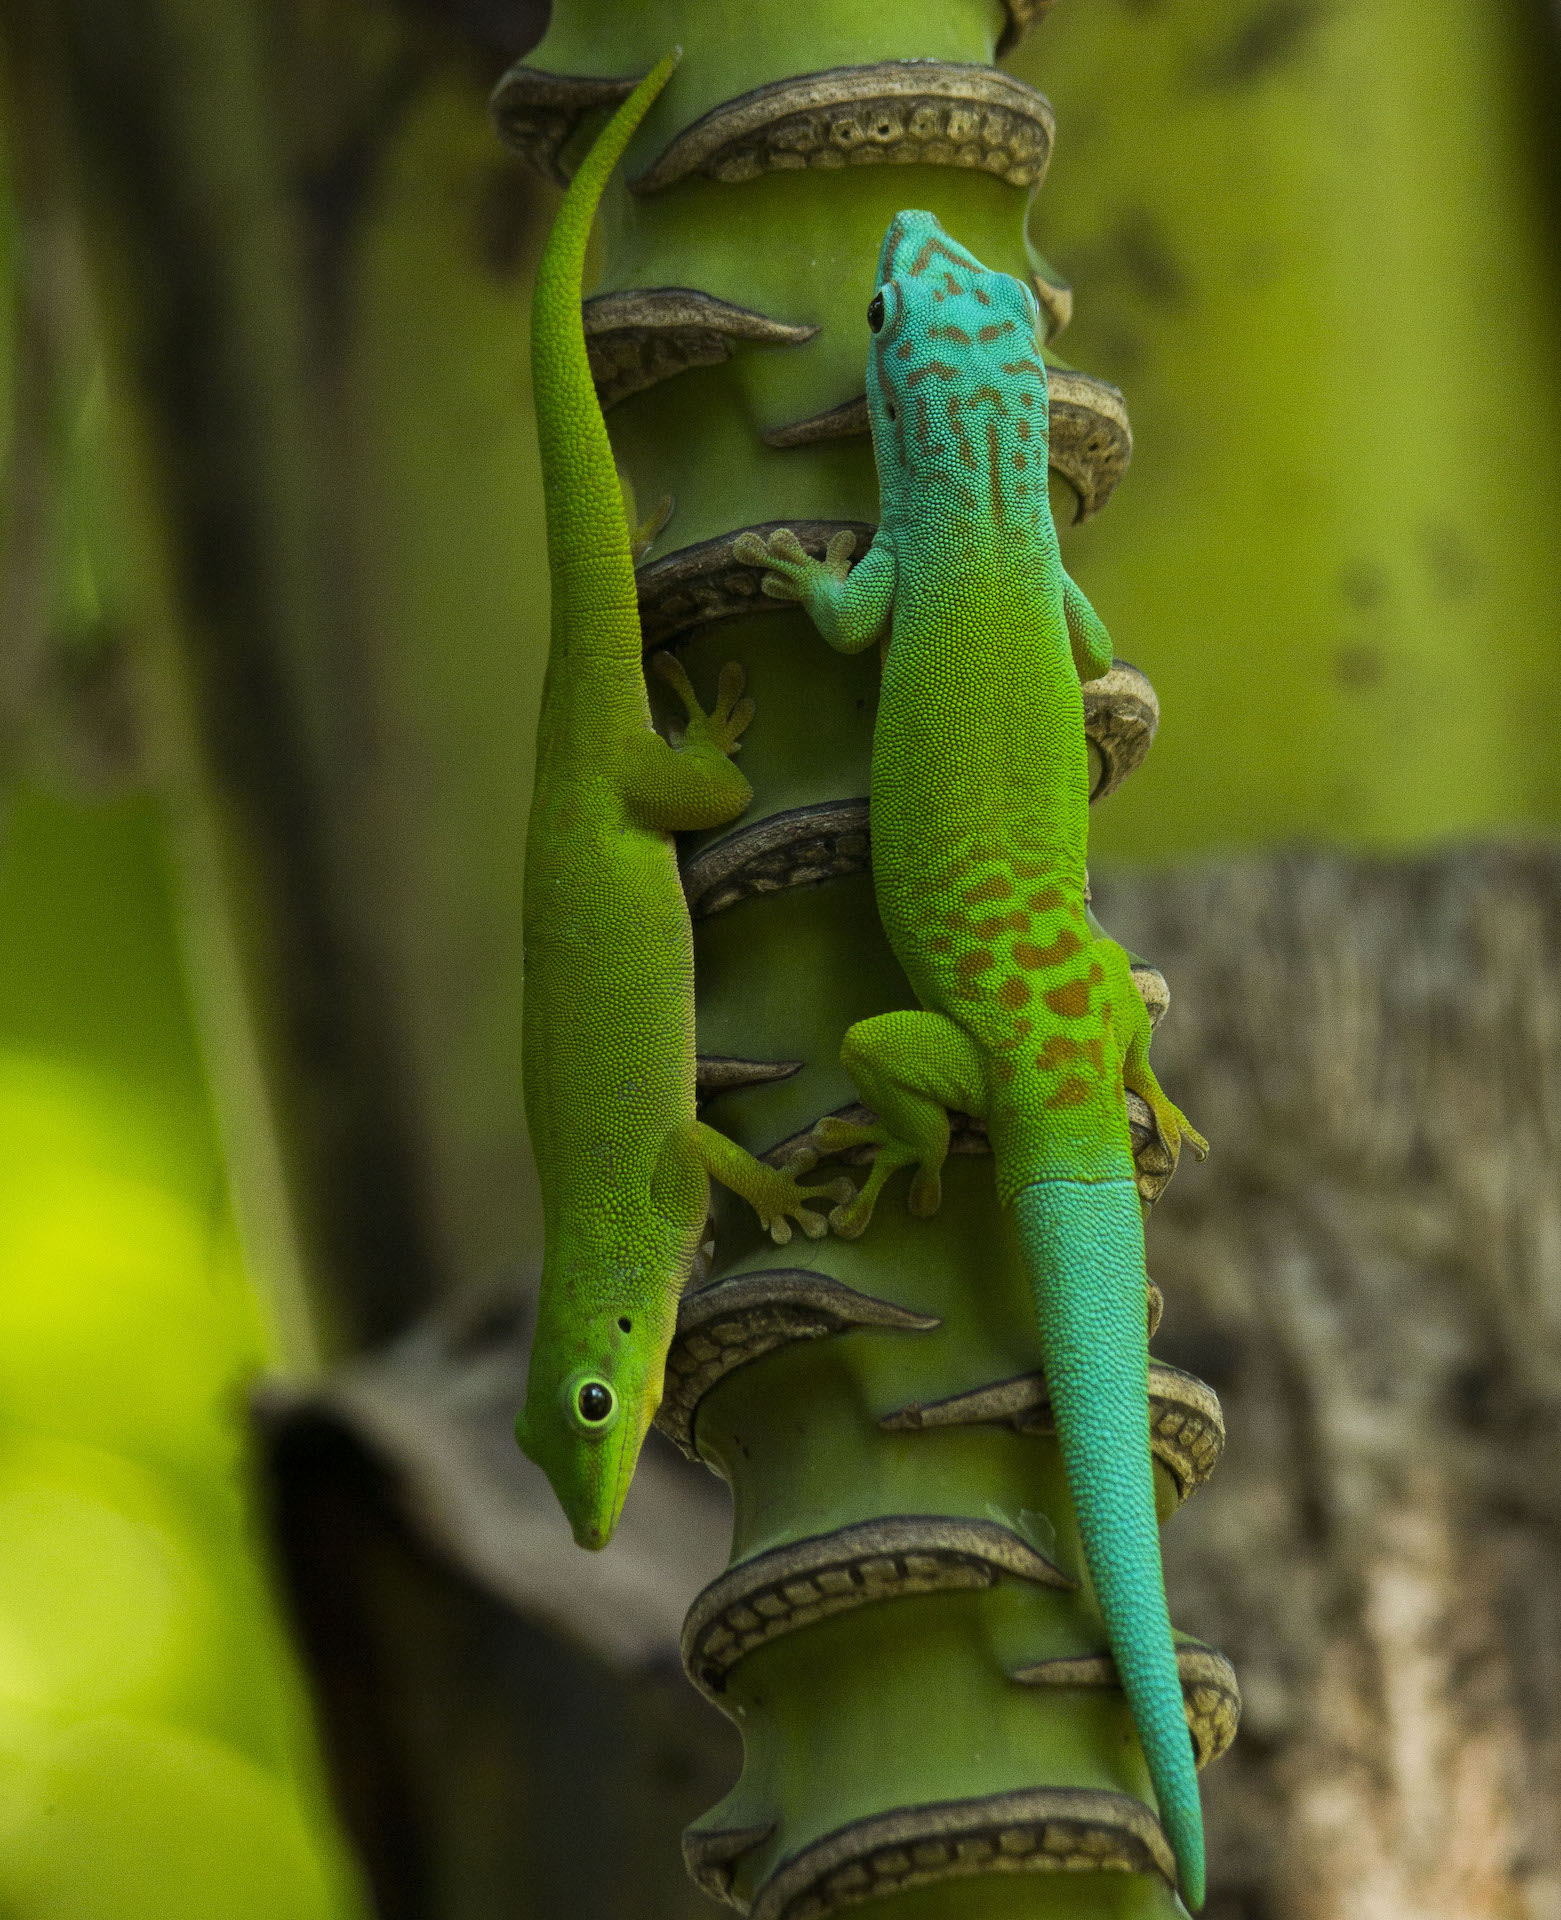 Endowed with a bluish-turquoise head and tail, the male gecko (right) is larger than the female, which is evenly green.  Photo: Sanjay Prasad